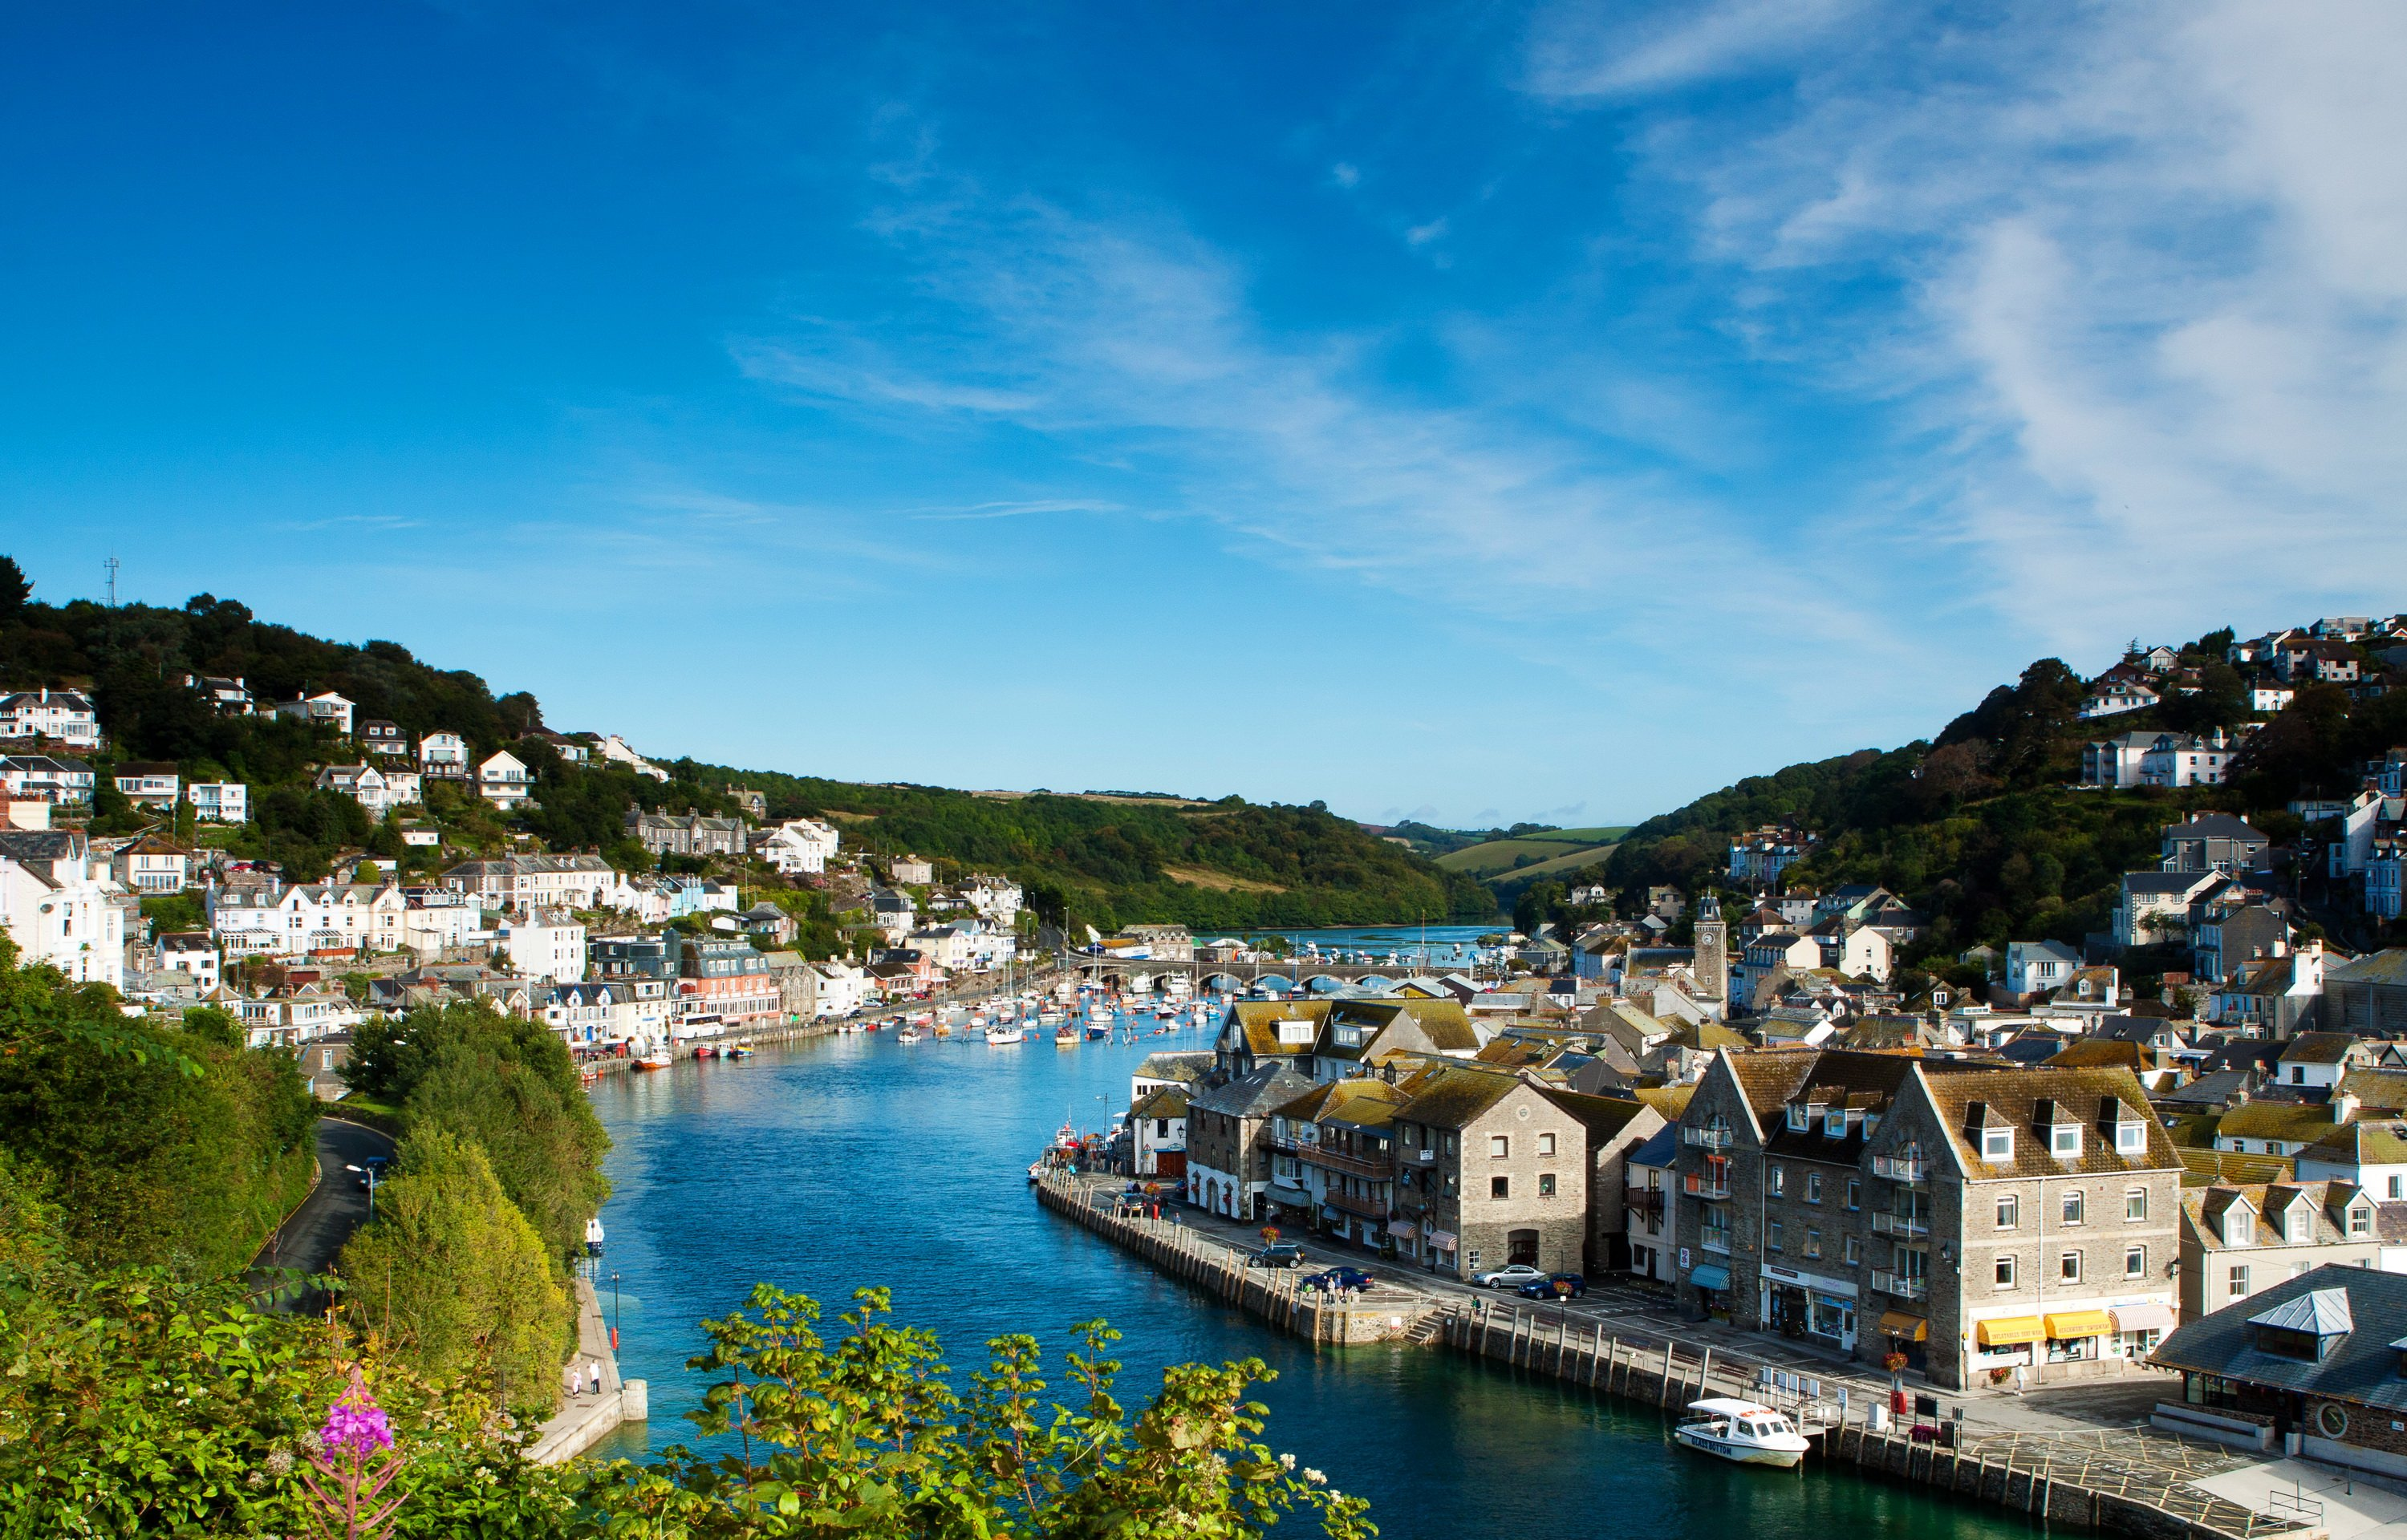 England_Houses_Rivers_Looe_Cornwall_Cities_3000x1920